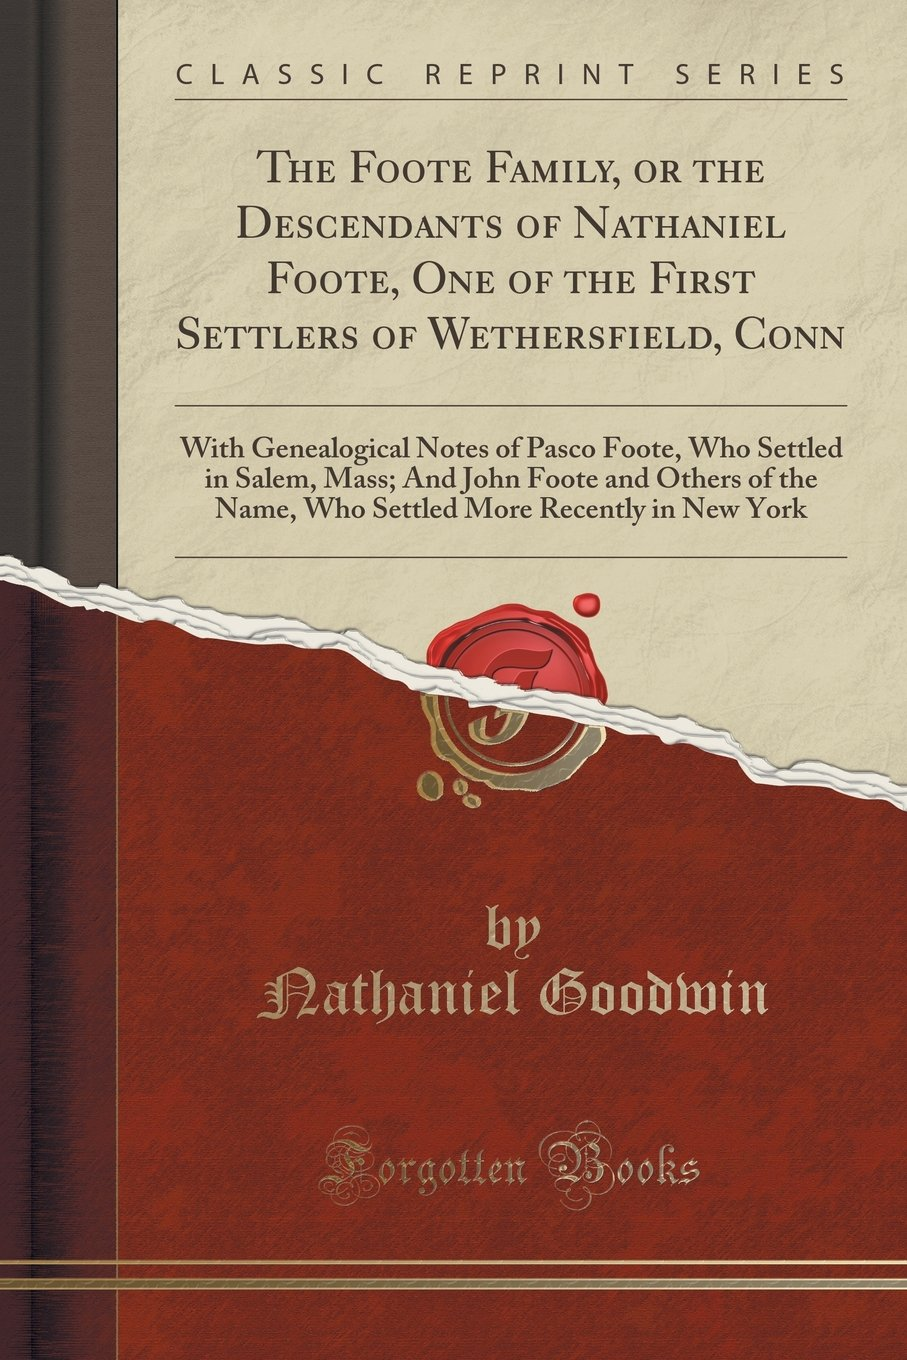 Read Online The Foote Family, or the Descendants of Nathaniel Foote, One of the First Settlers of Wethersfield, Conn: With Genealogical Notes of Pasco Foote, Who ... Name, Who Settled More Recently in New York PDF